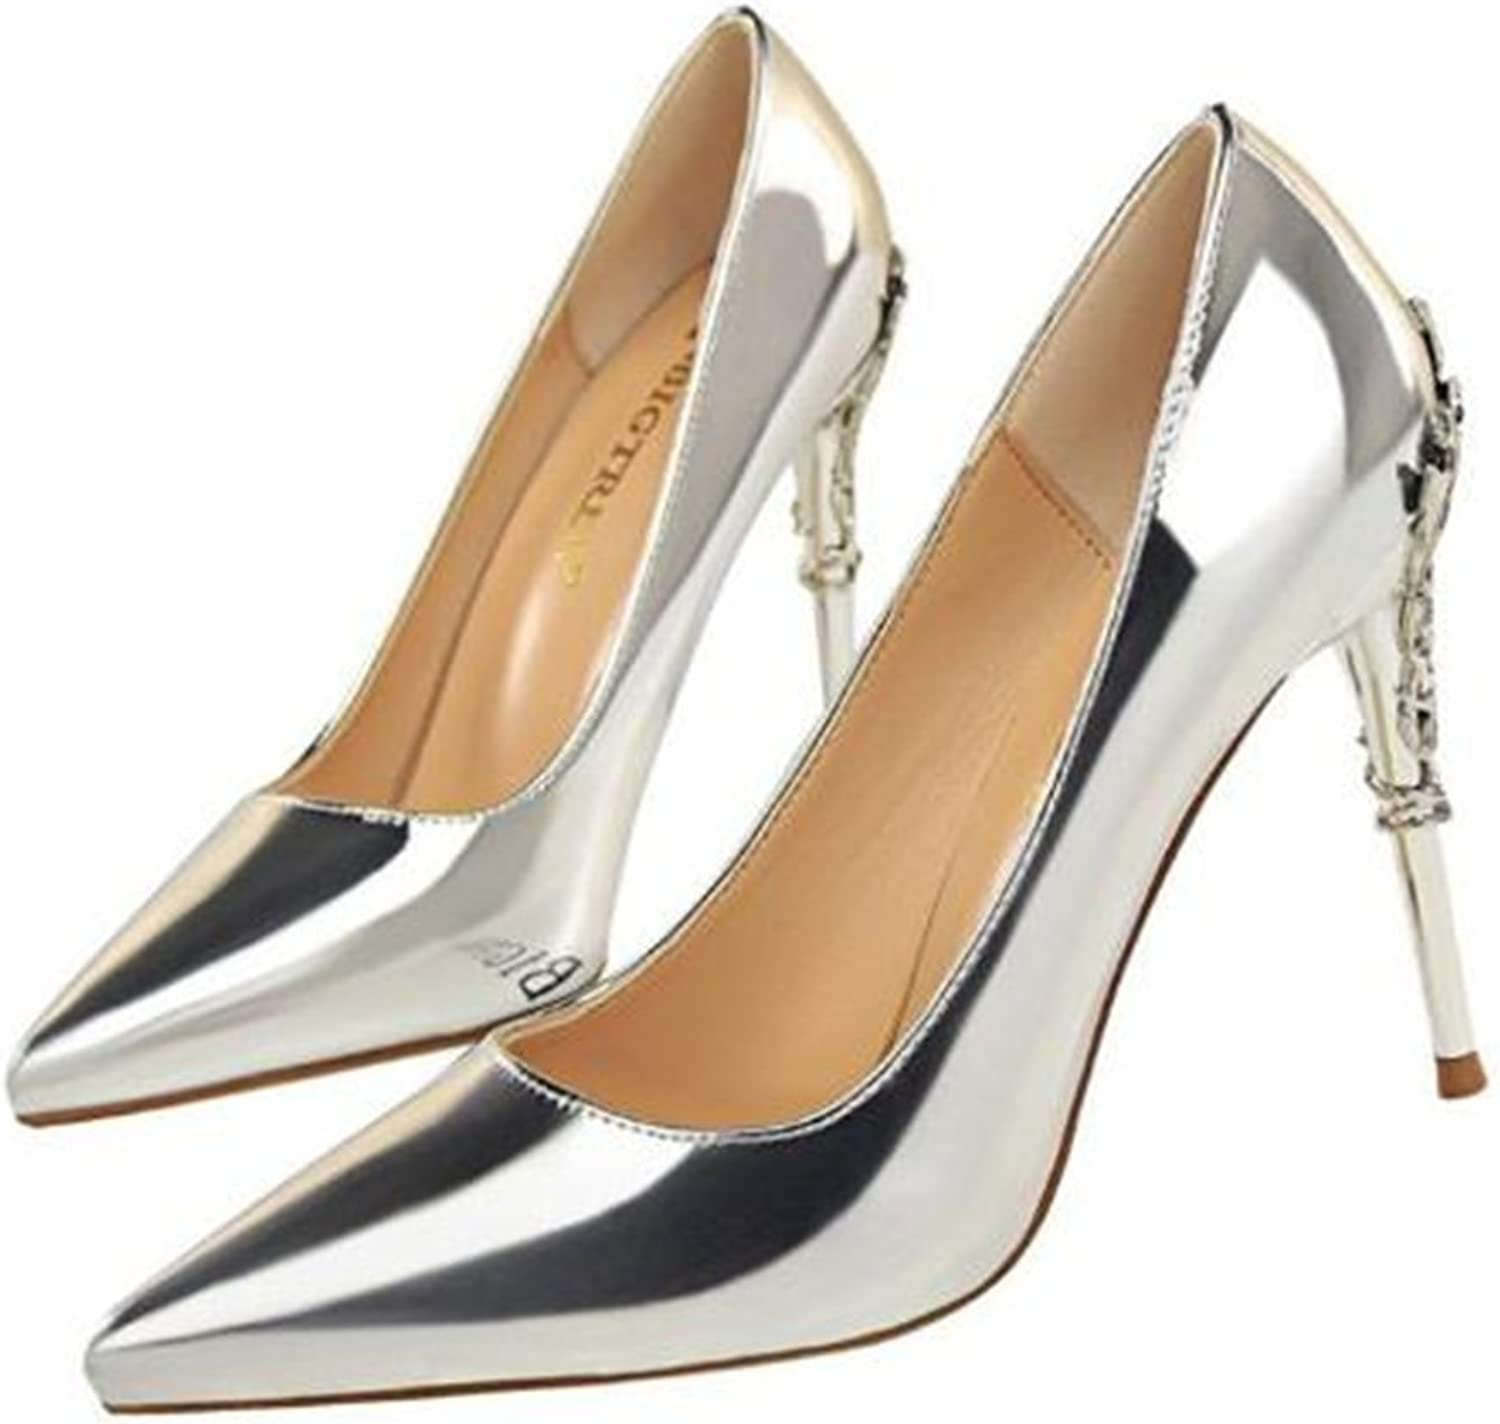 TUYPSHOES Stiletto High Heel shoes for Women  Pointed, Closed Toe Classic Slip On Dress Pumps